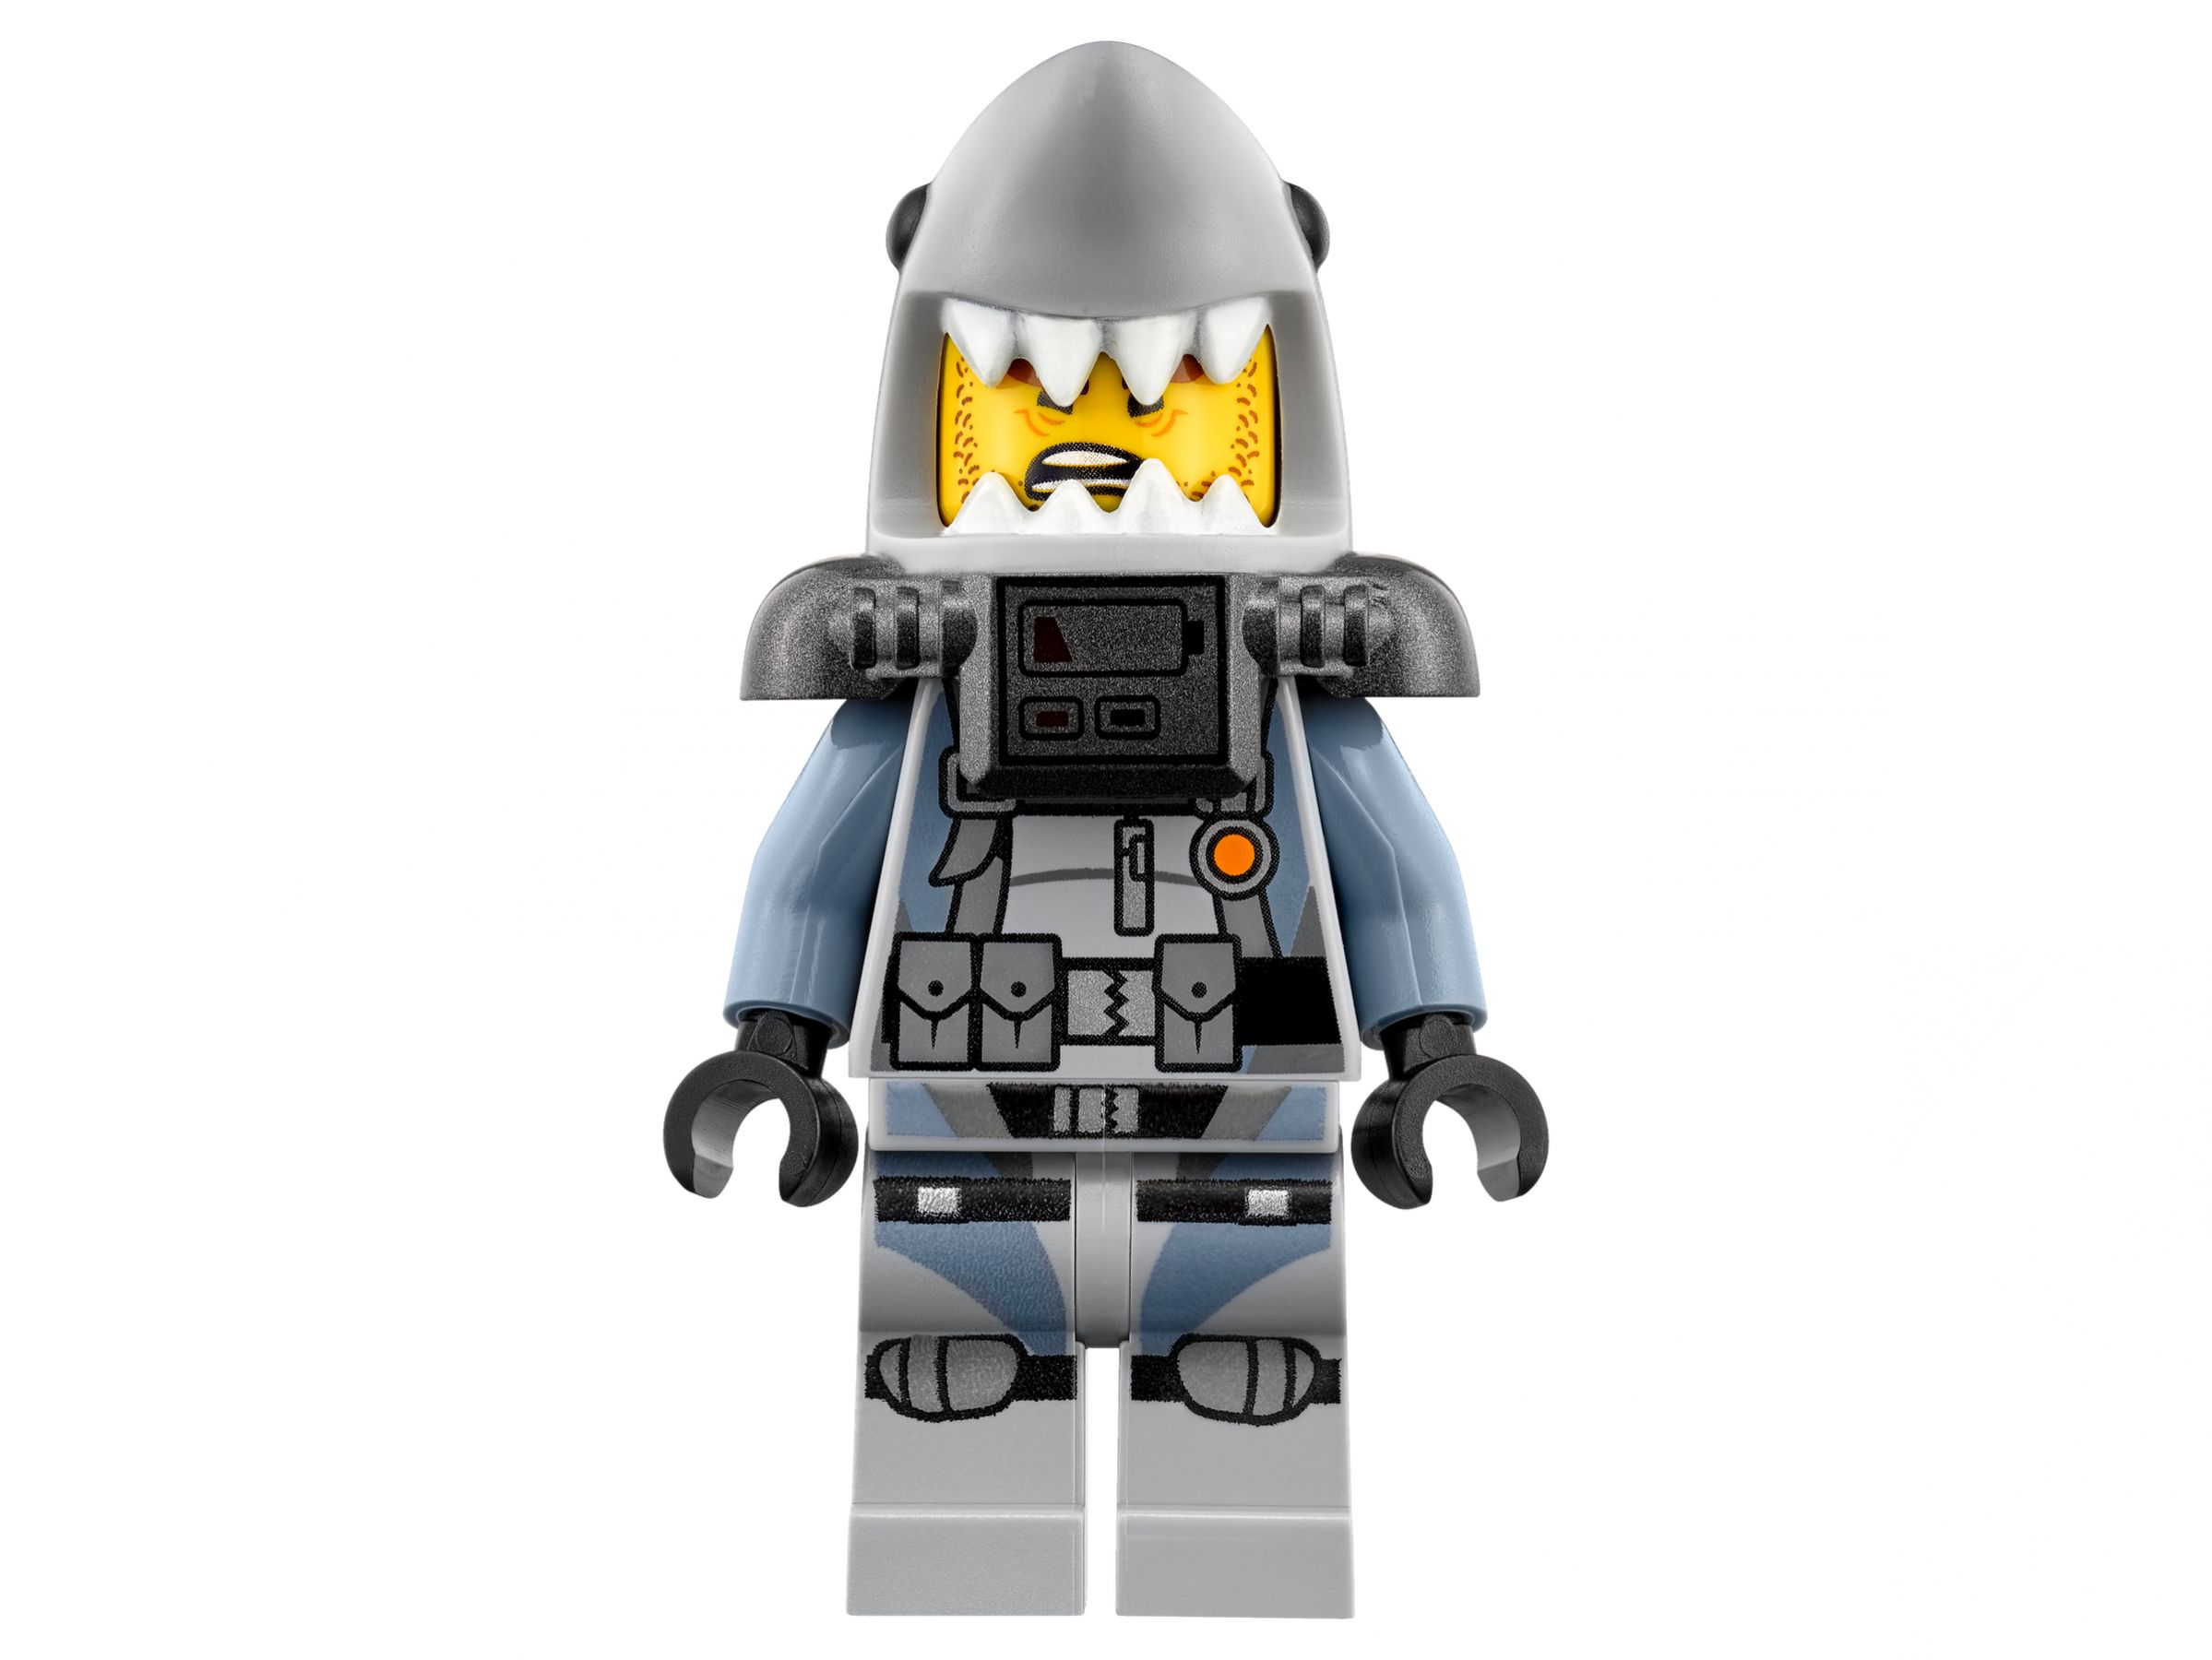 LEGO The LEGO Ninjago Movie 70613 Garmadon's Robo-Hai LEGO_70613_alt12.jpg